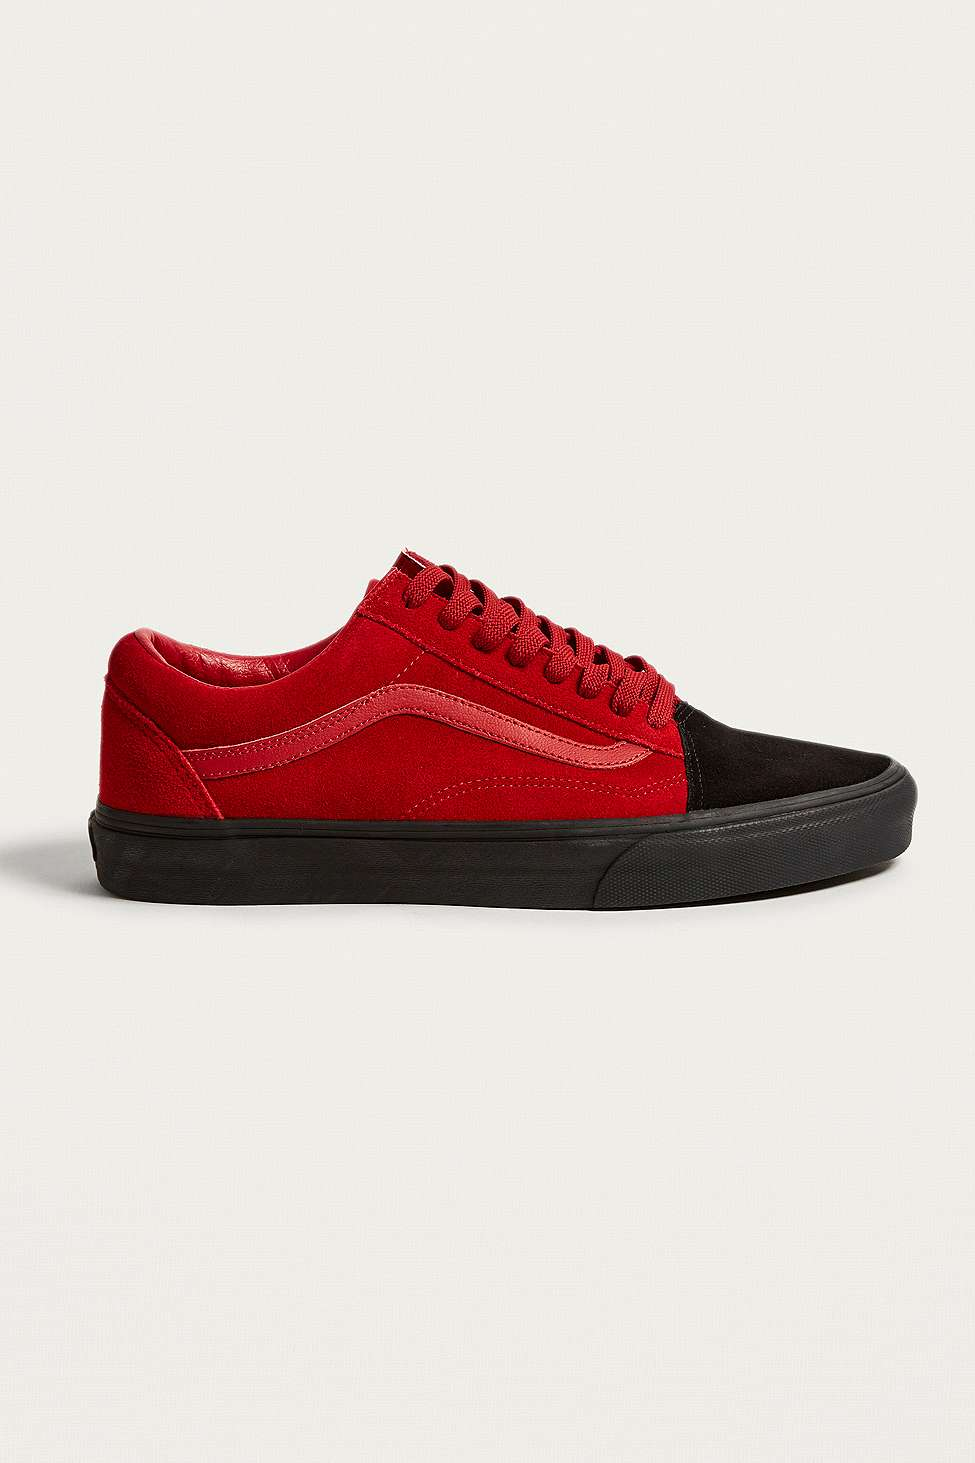 Old Skool Trainers In Red - Red Vans